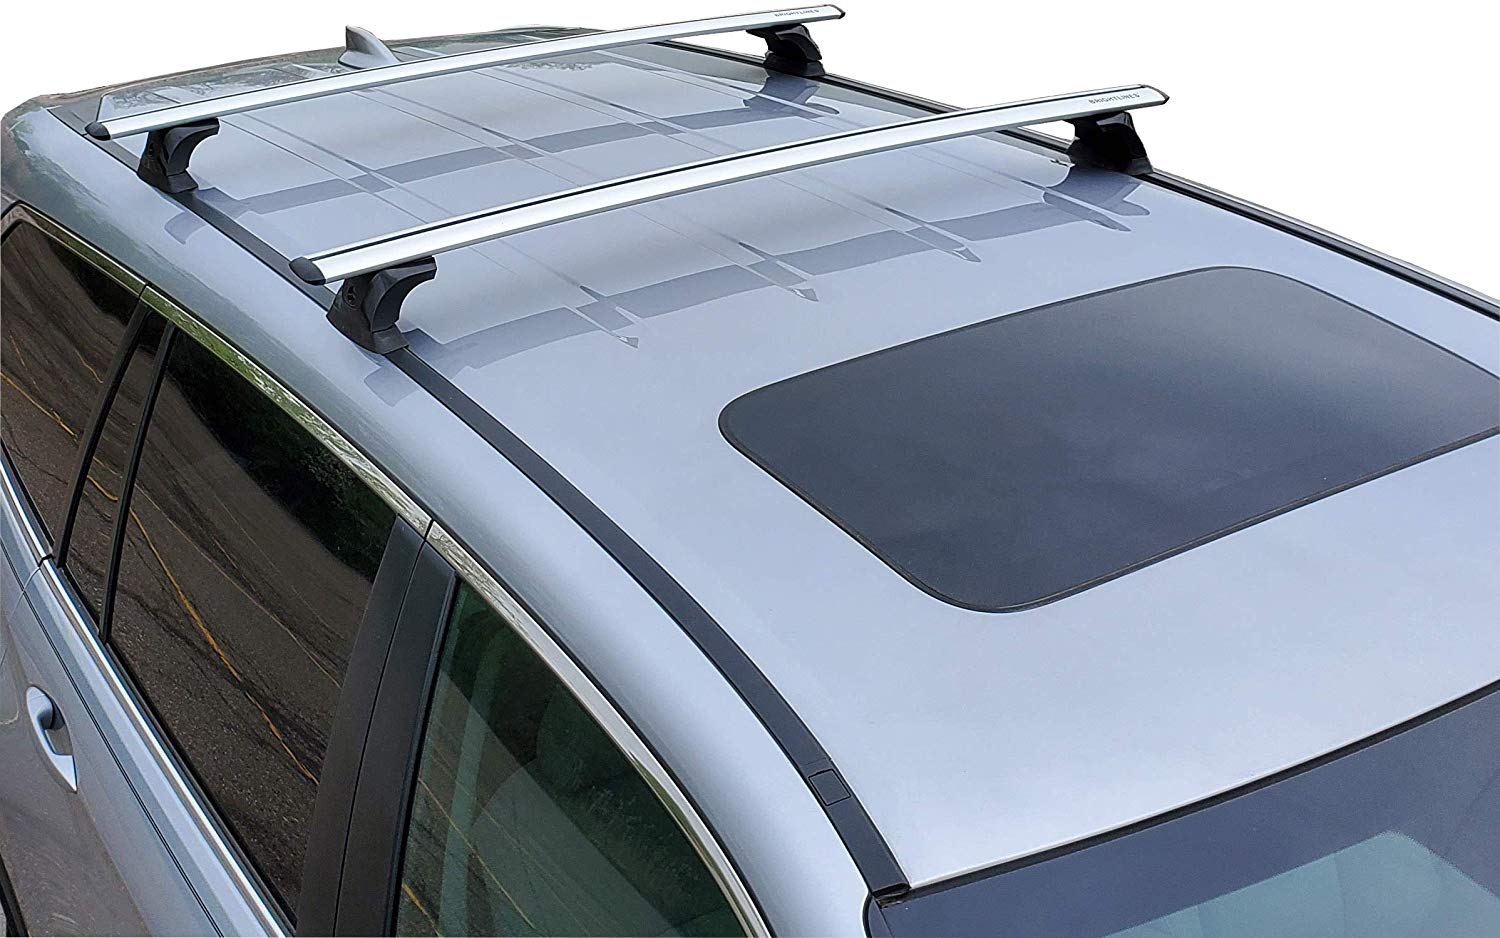 Solid Roof Cross Bars Racks For Honda Pilot Without Side Rails 2016 2019